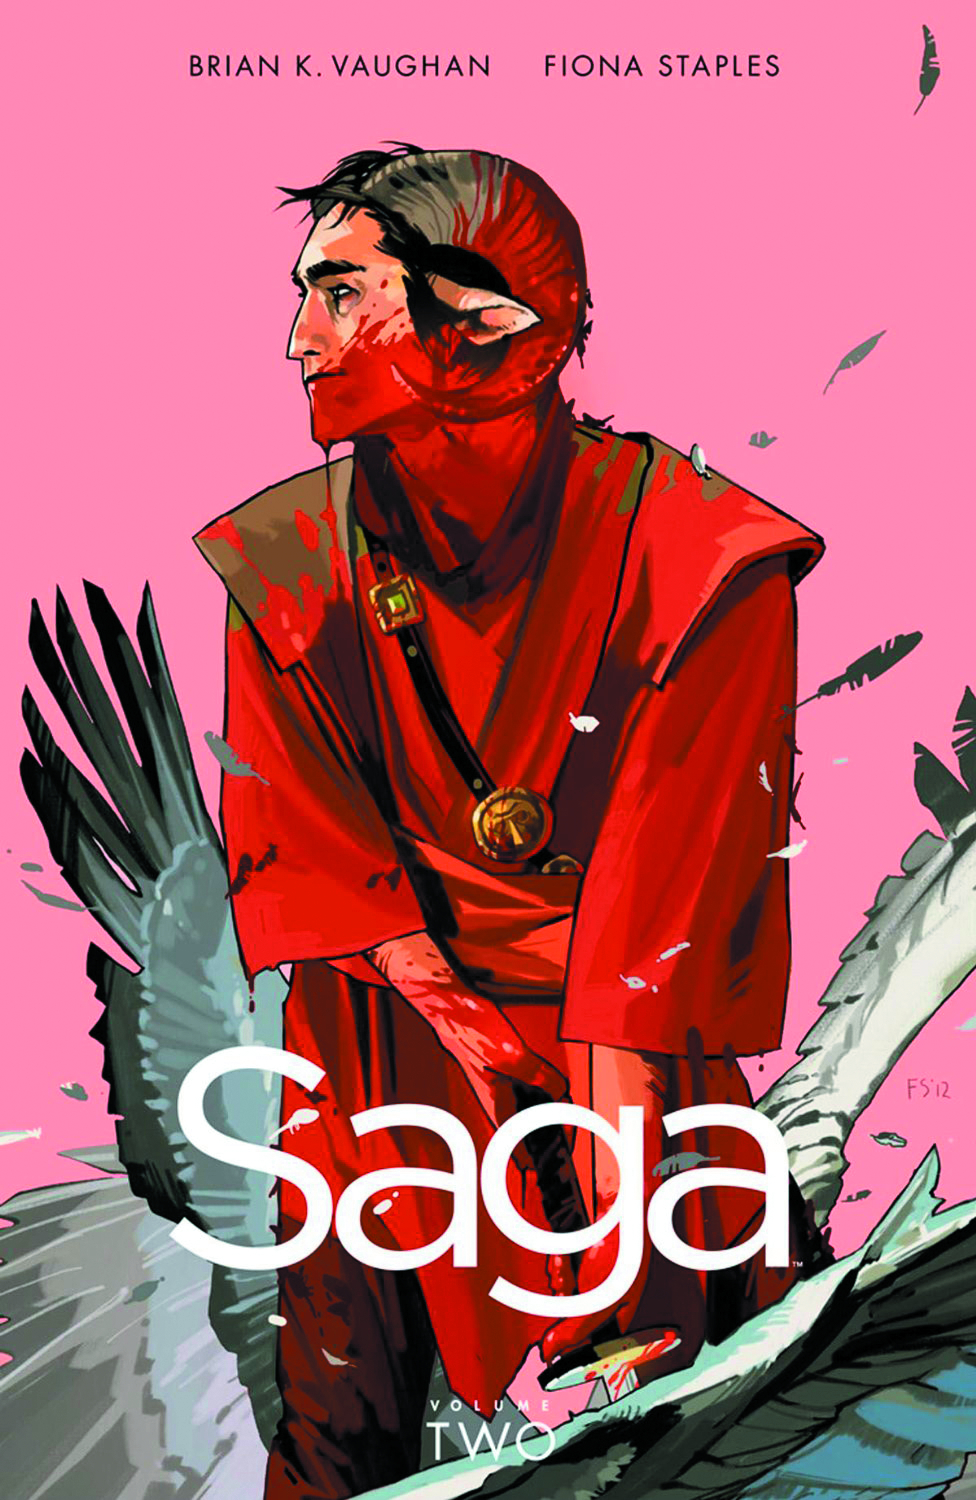 SAGA TP VOL 02 (APR130443) (MR)